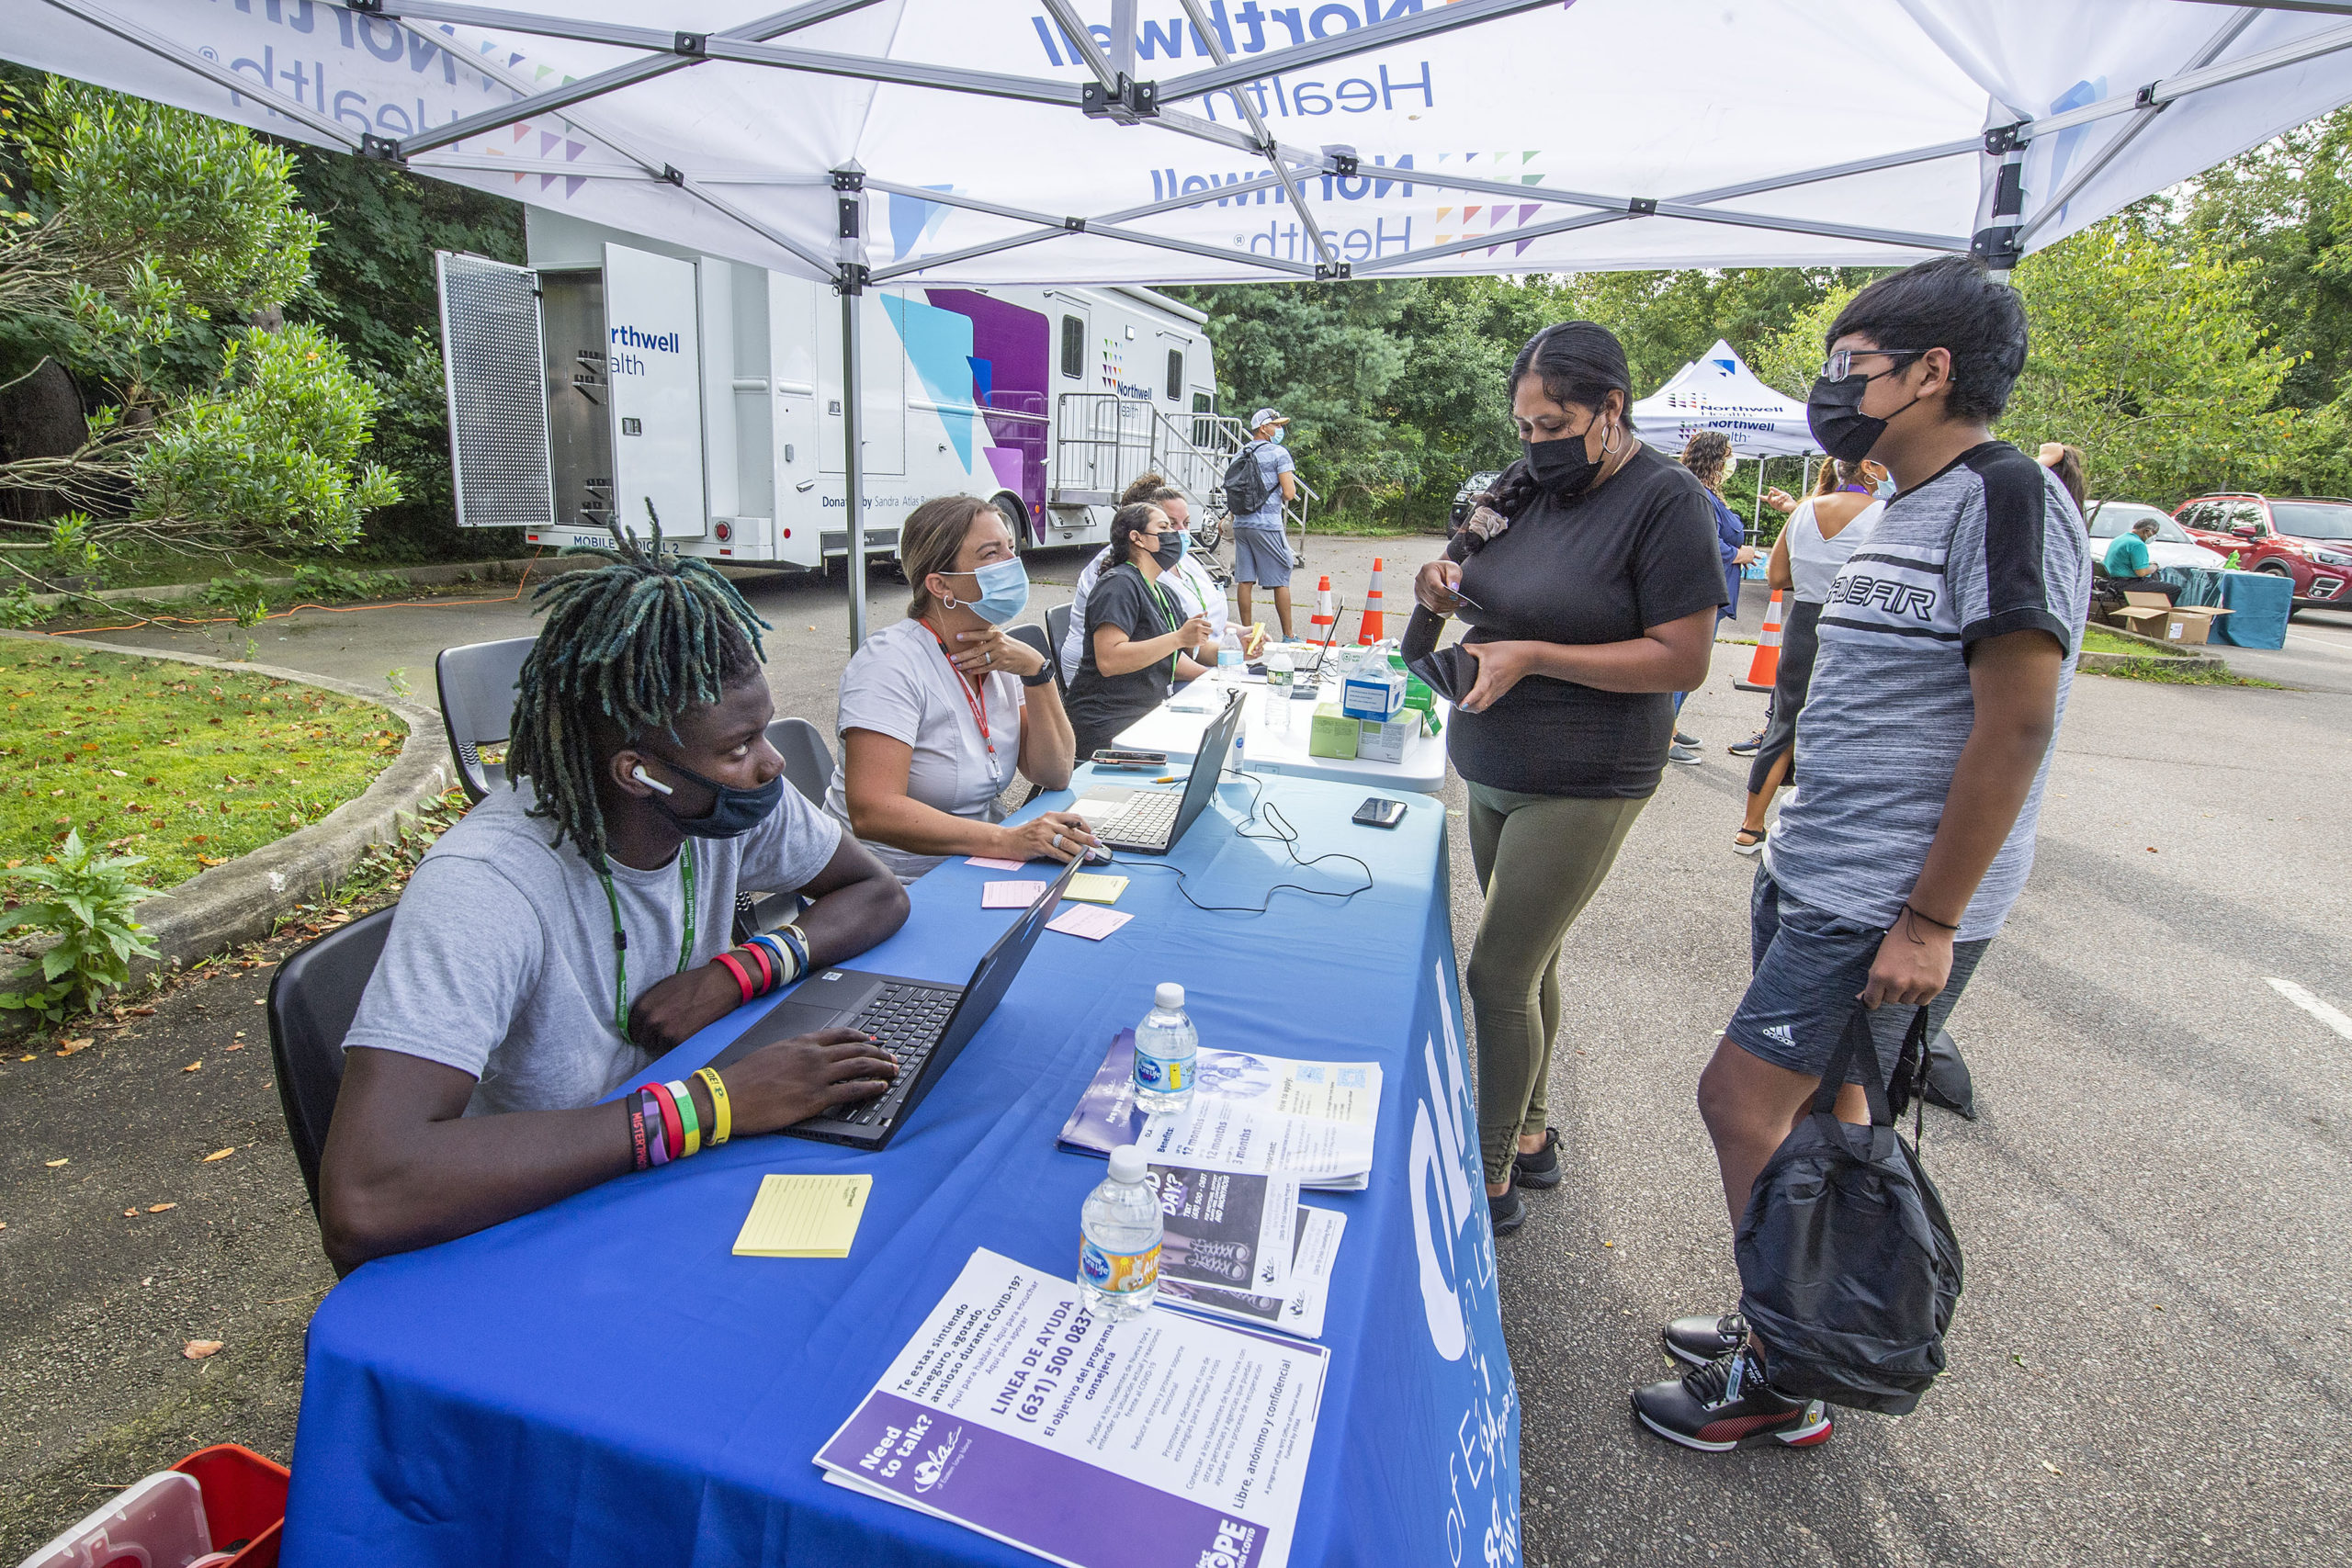 Applicants check in at a registration desk at a pop-up COVID-19 vaccination site that was organized and hosted by the OLA of Eastern Long Island in conjunction with Northwell Health in the parking lot of the Children's Museum of the East End in Bridgehampton on  August 19.  MICHAEL HELLER